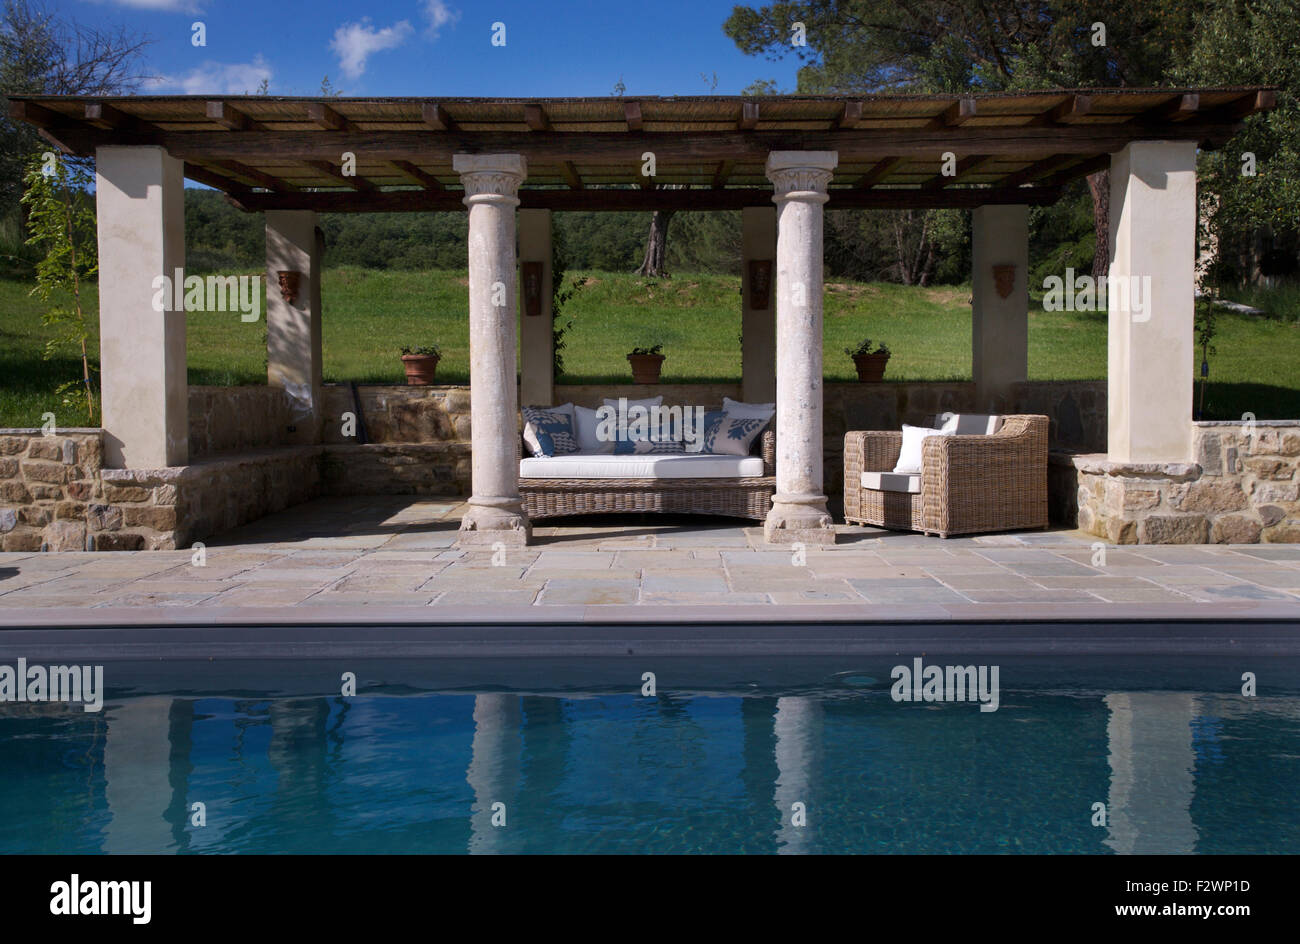 Italian country gardens - Stock Photo Wicker Sofas On Terrace With Pillars And Beamed Roof Beside Swimming Pool In Italian Country Garden